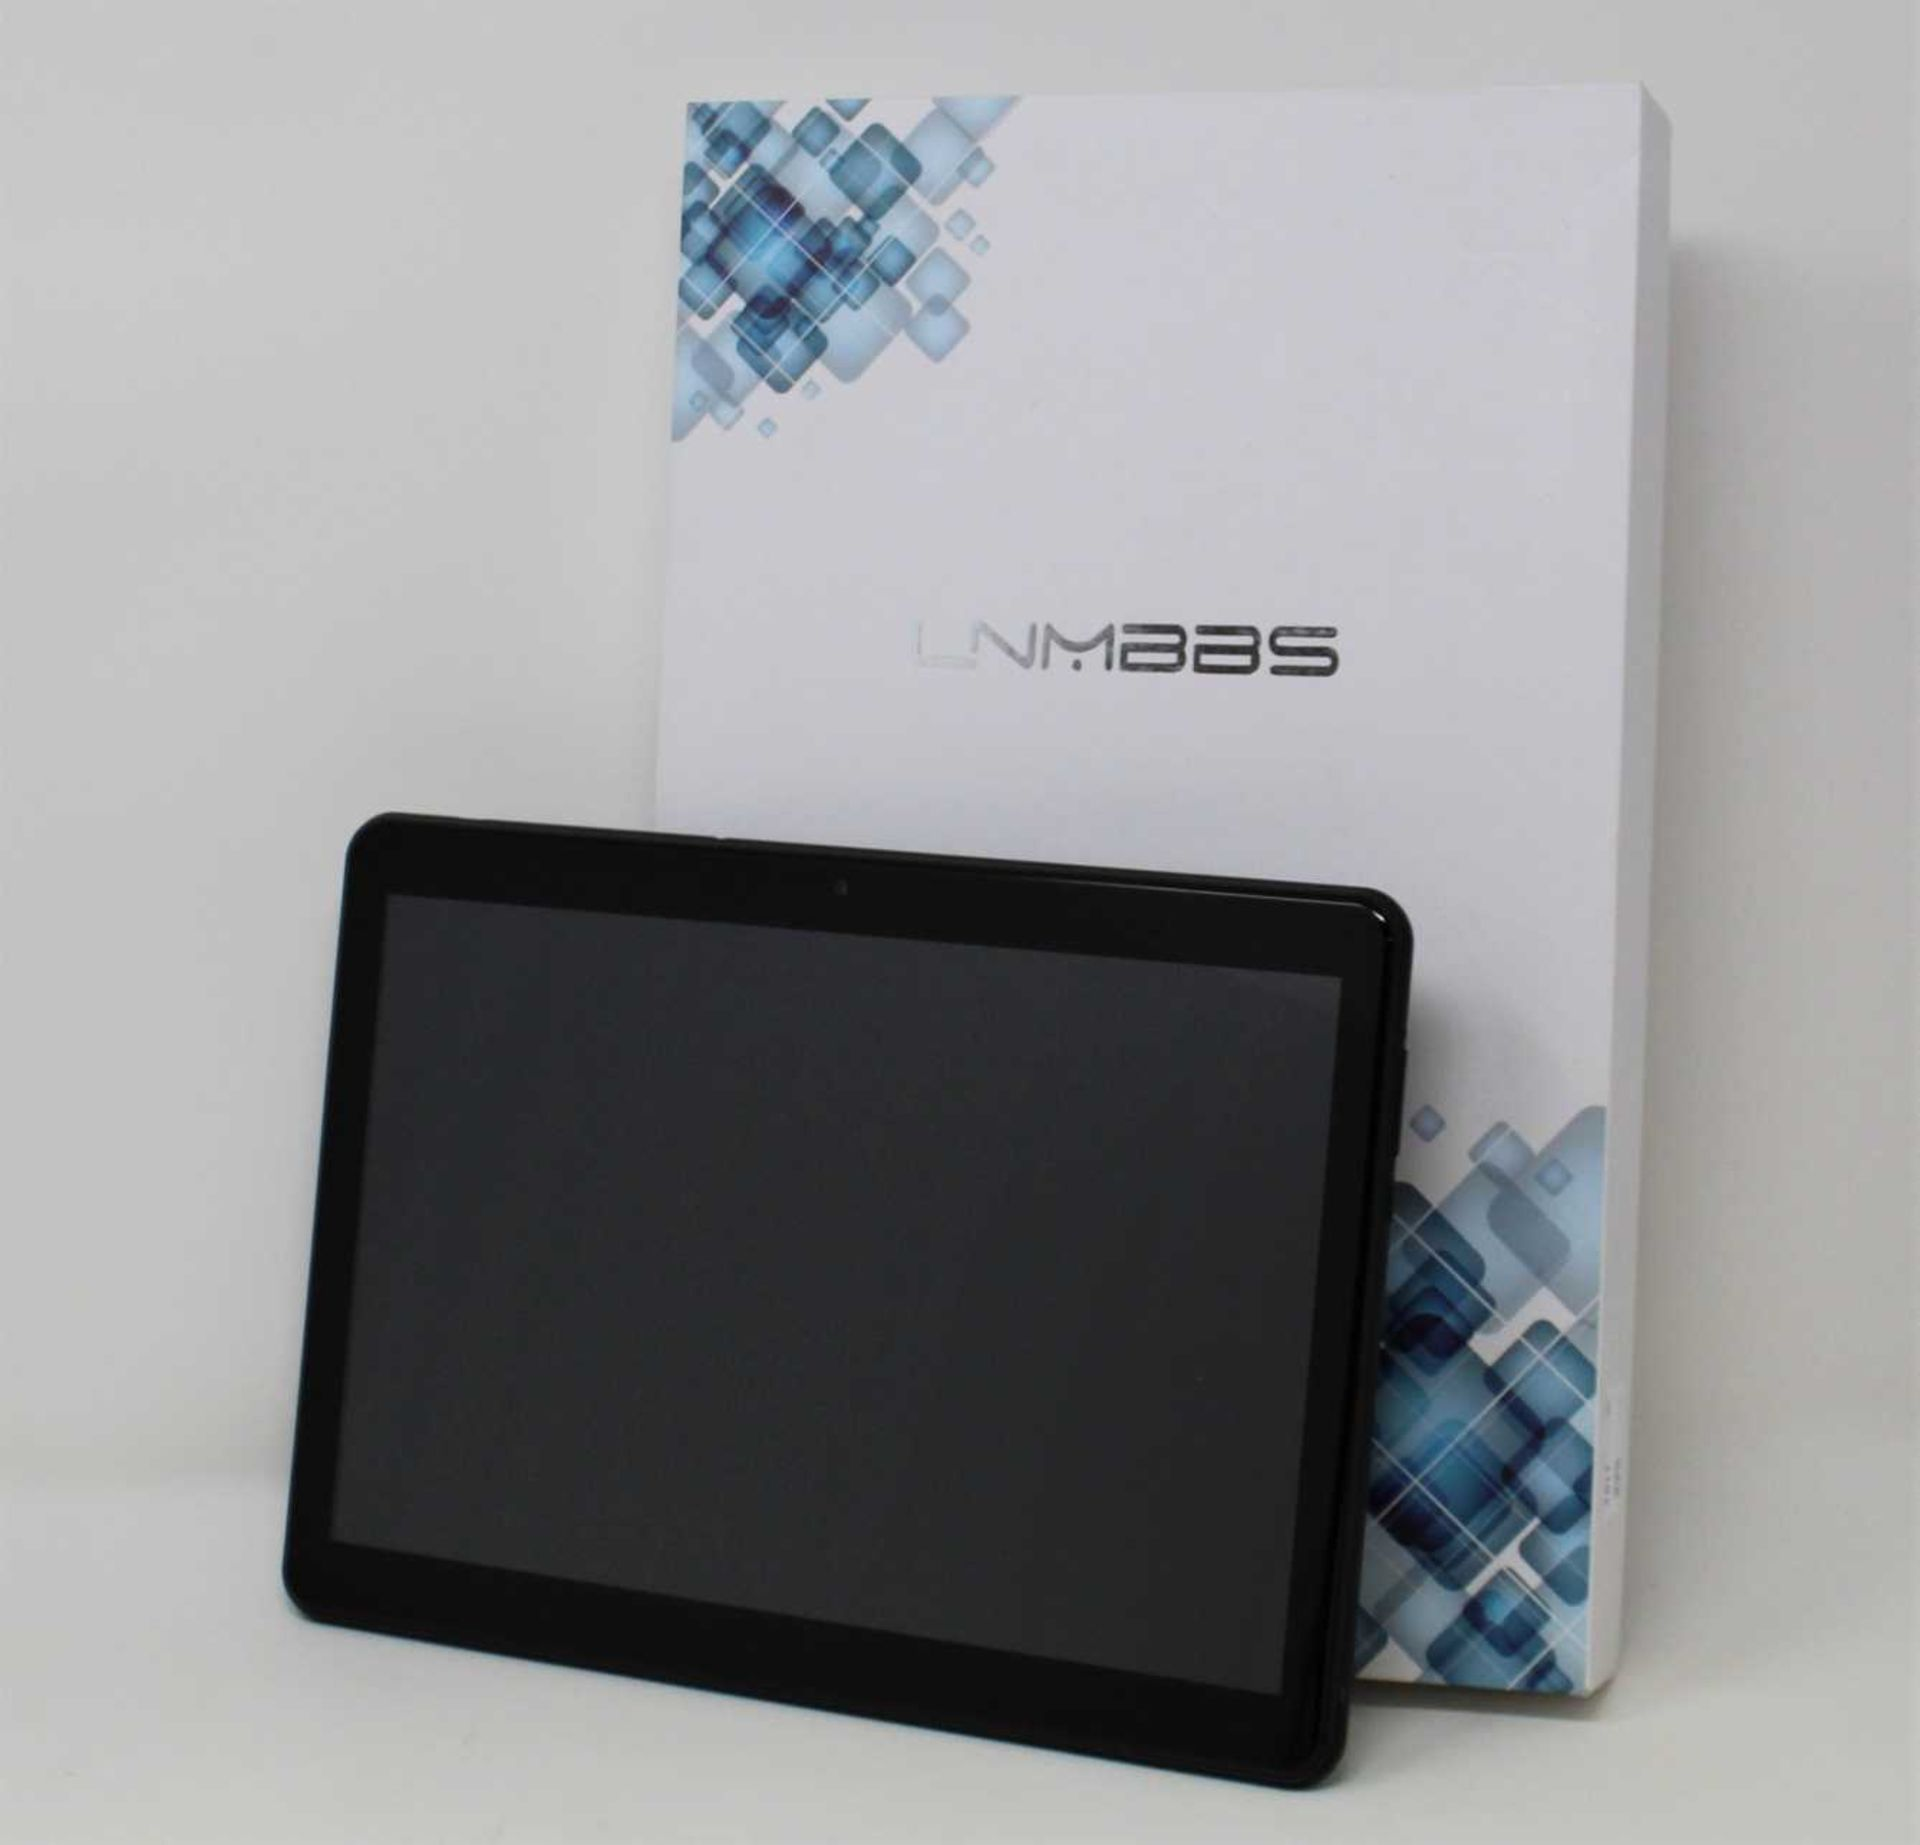 """A pre-owned LNMBBS K802 32GB Dual SIM 10.1"""" Android Tablet in Black (Box and accessories included,"""